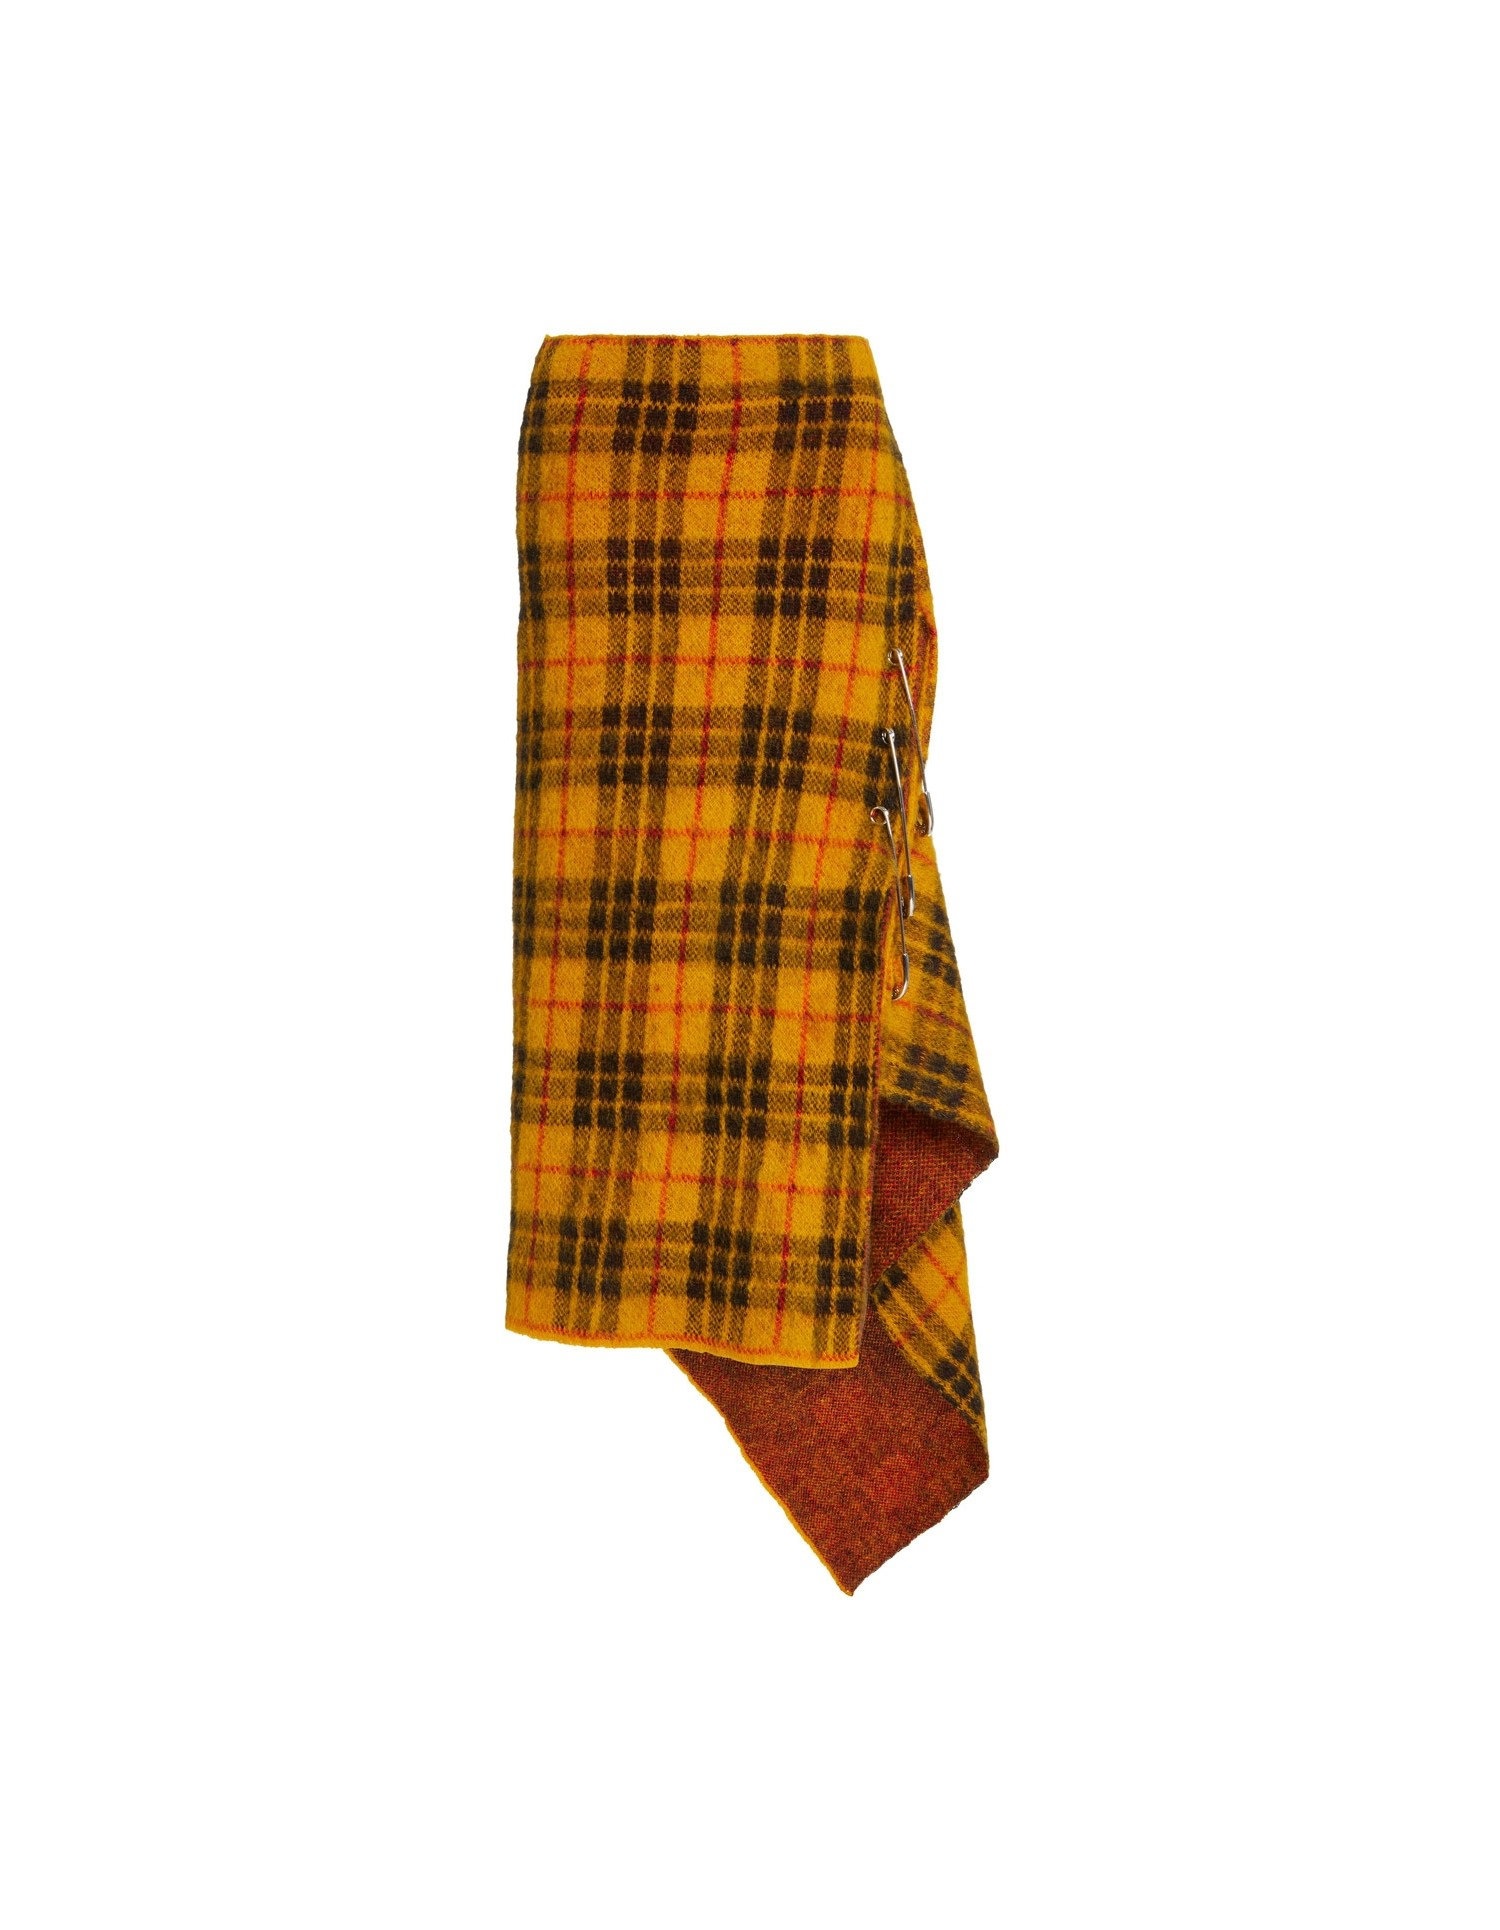 MONSE Tartan Mohair Skirt in Mustard Multi Flat Front